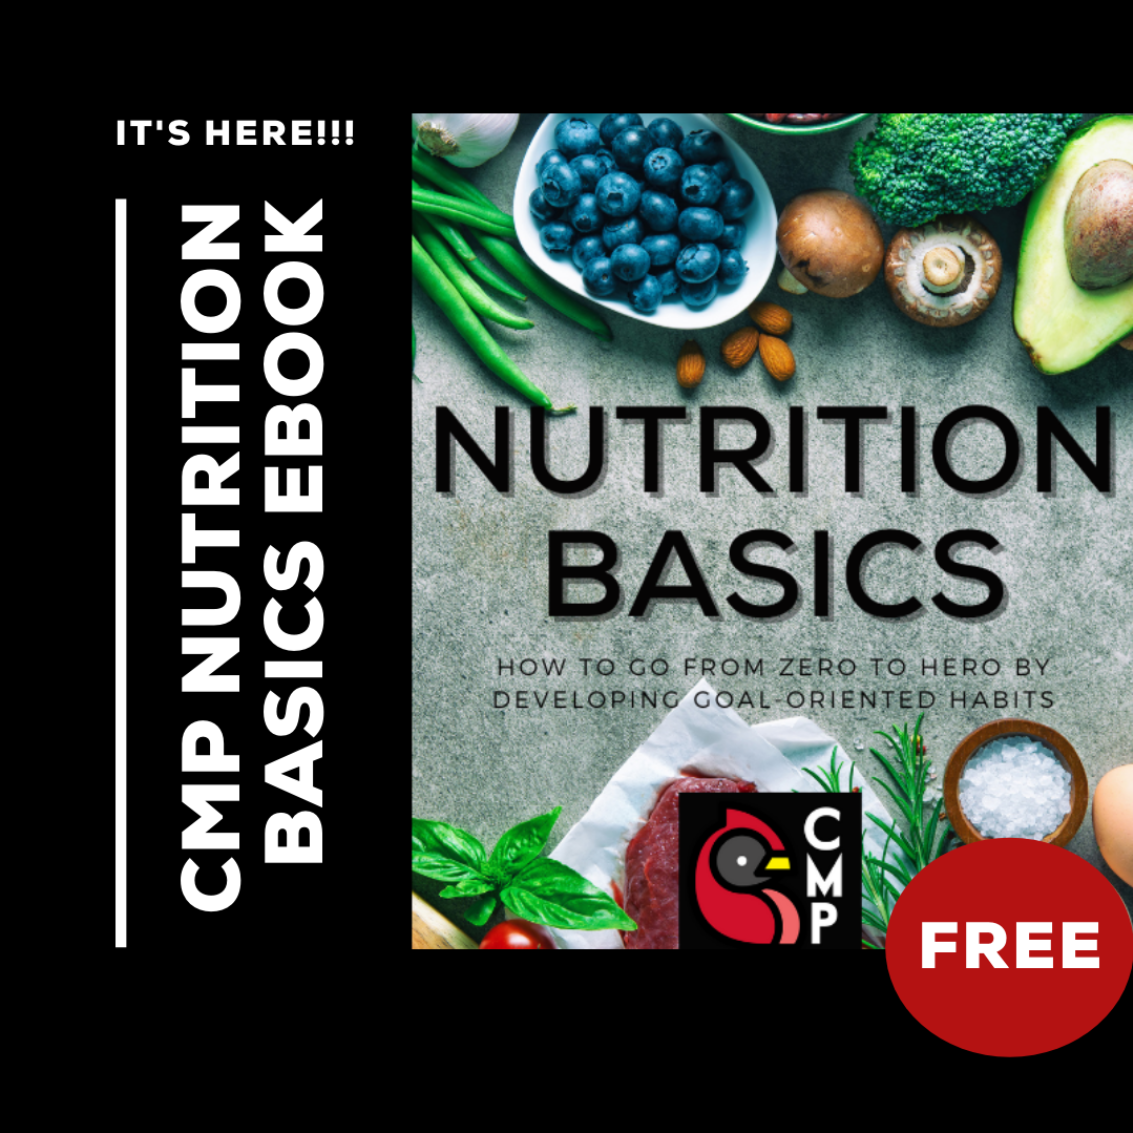 CMP Nutrition Basics Ebook